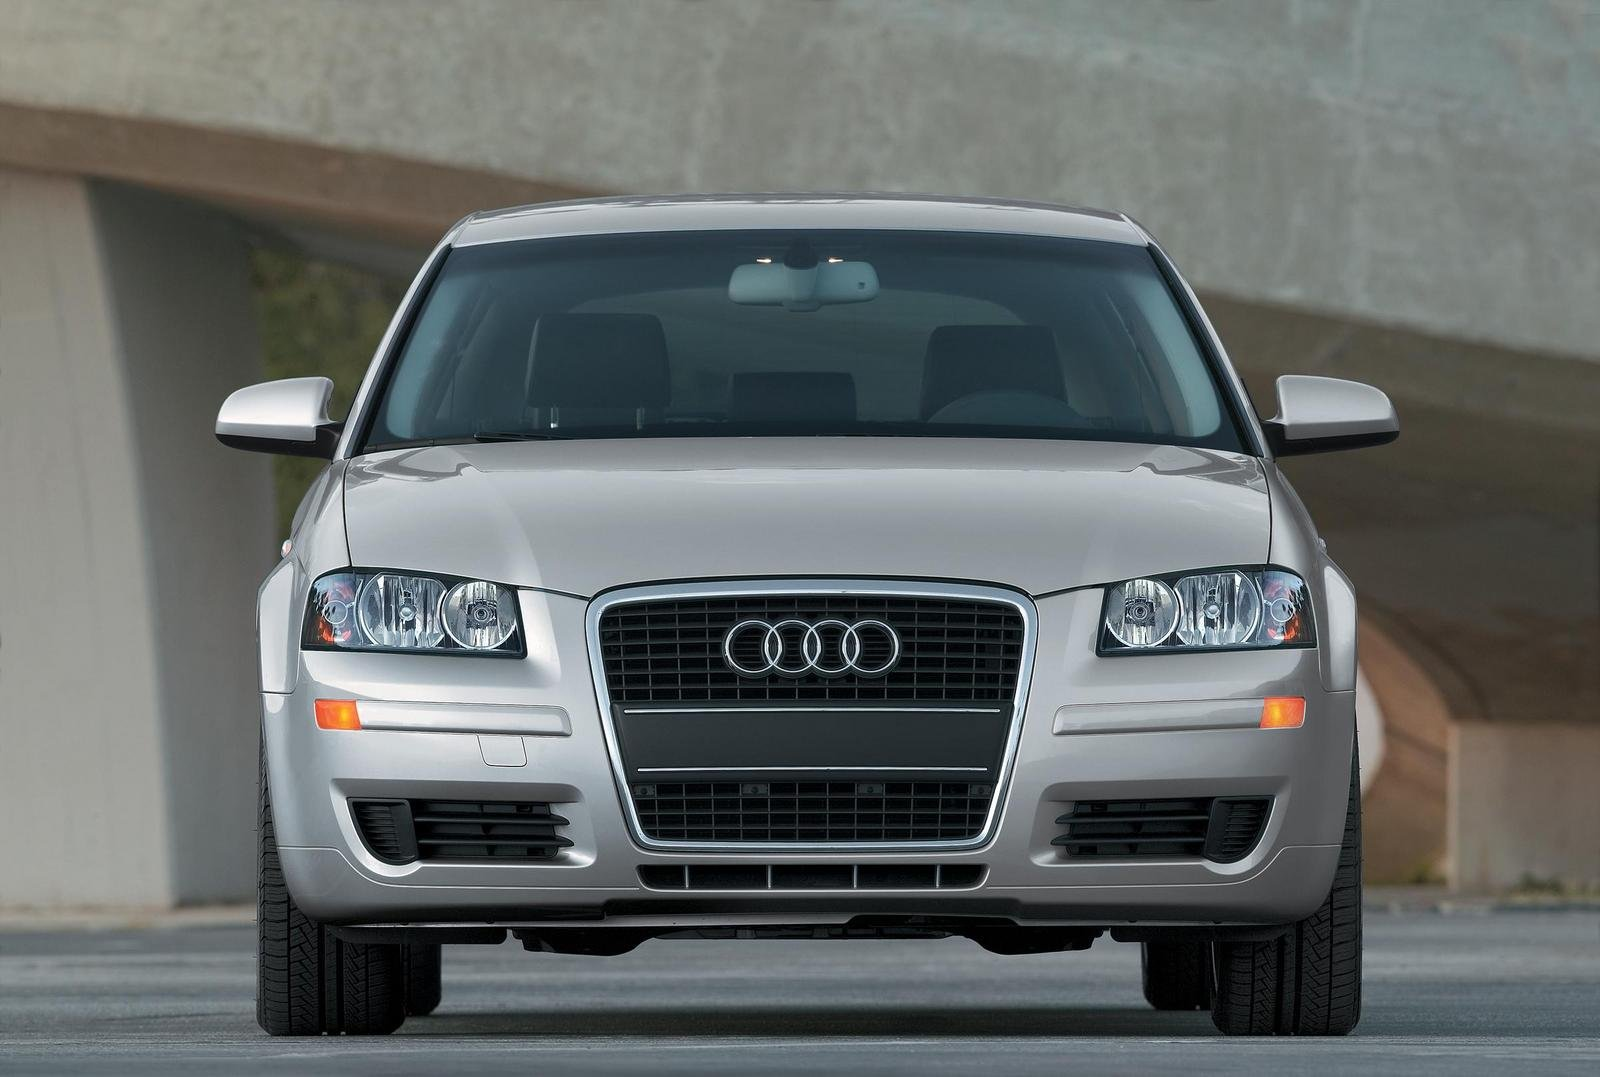 2007 audi a3 picture 99769 car review top speed. Black Bedroom Furniture Sets. Home Design Ideas